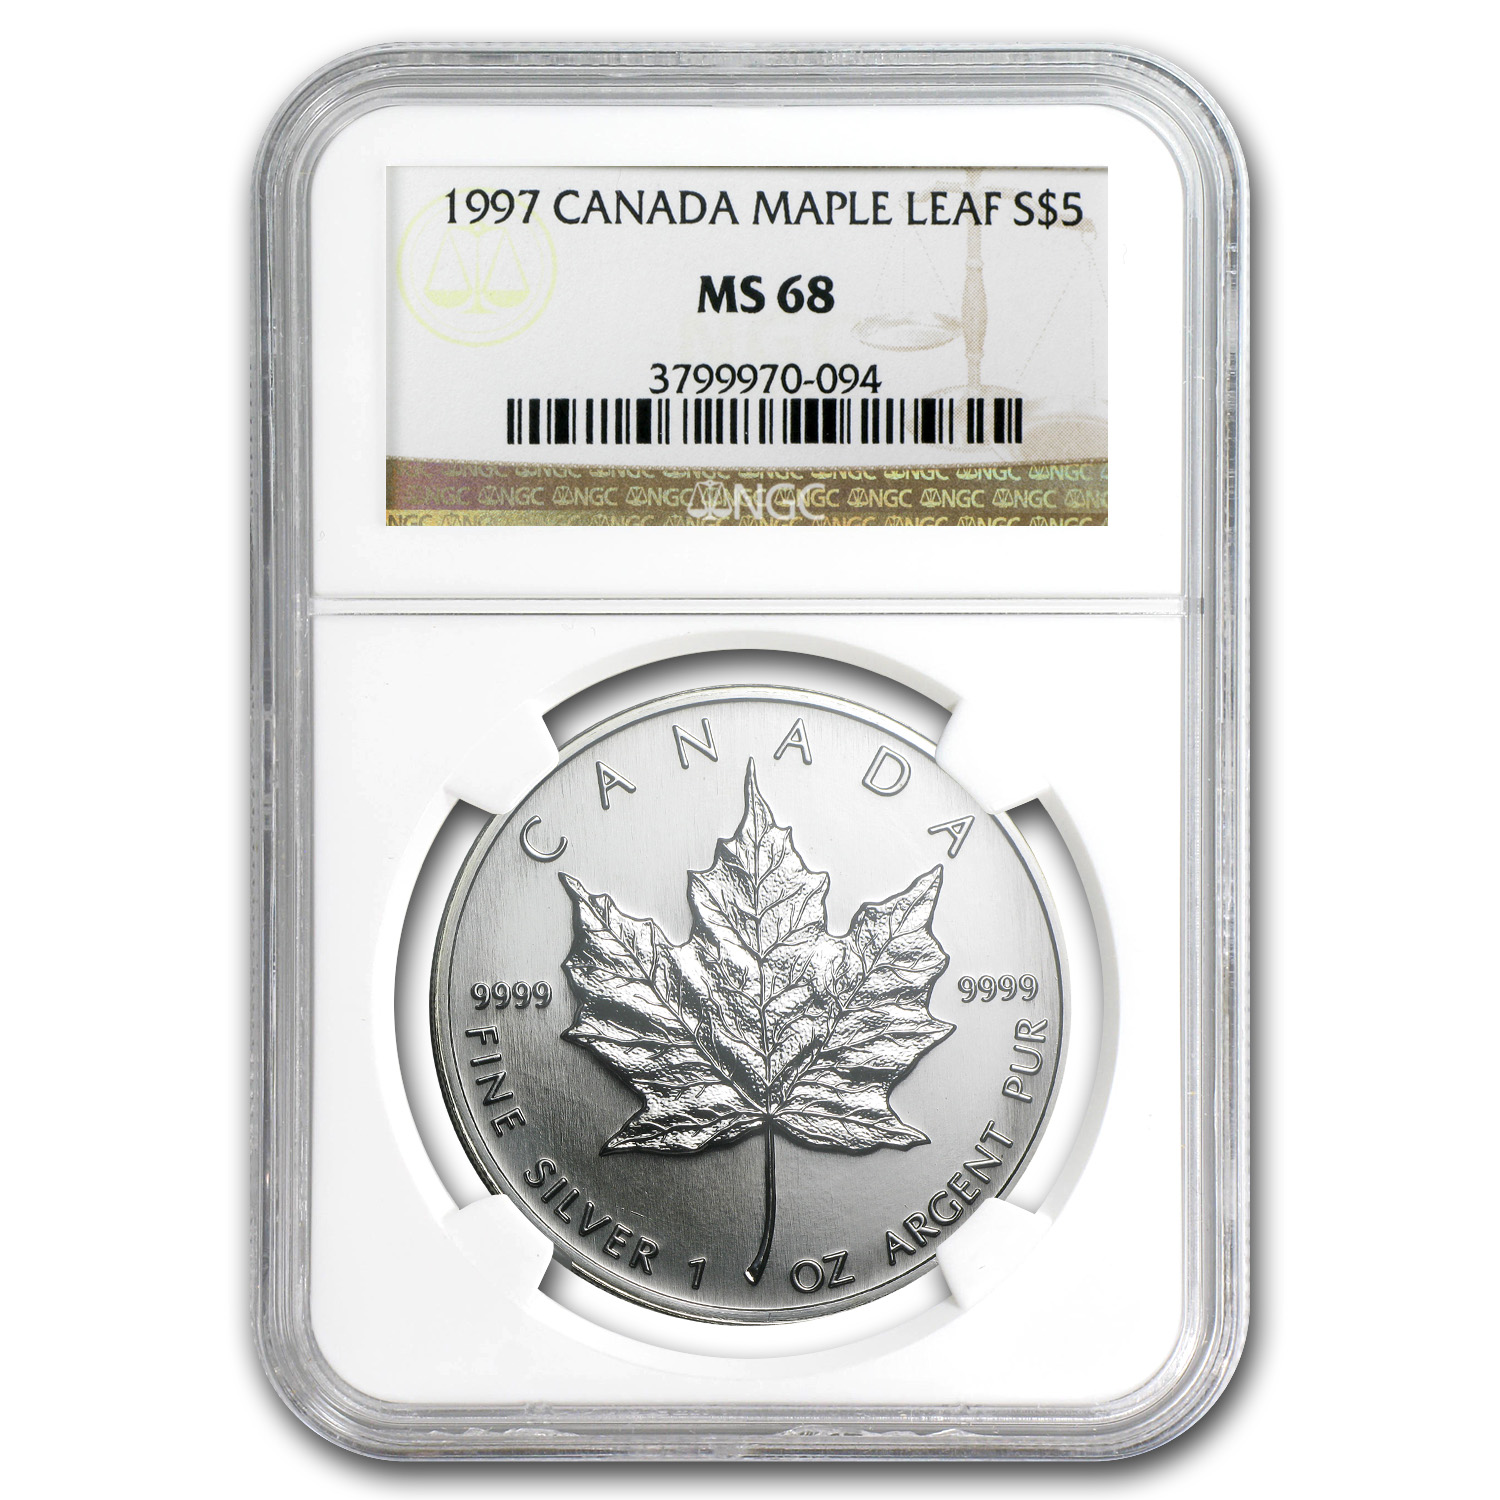 1997 Canada 1 oz Silver Maple Leaf MS-68 NGC